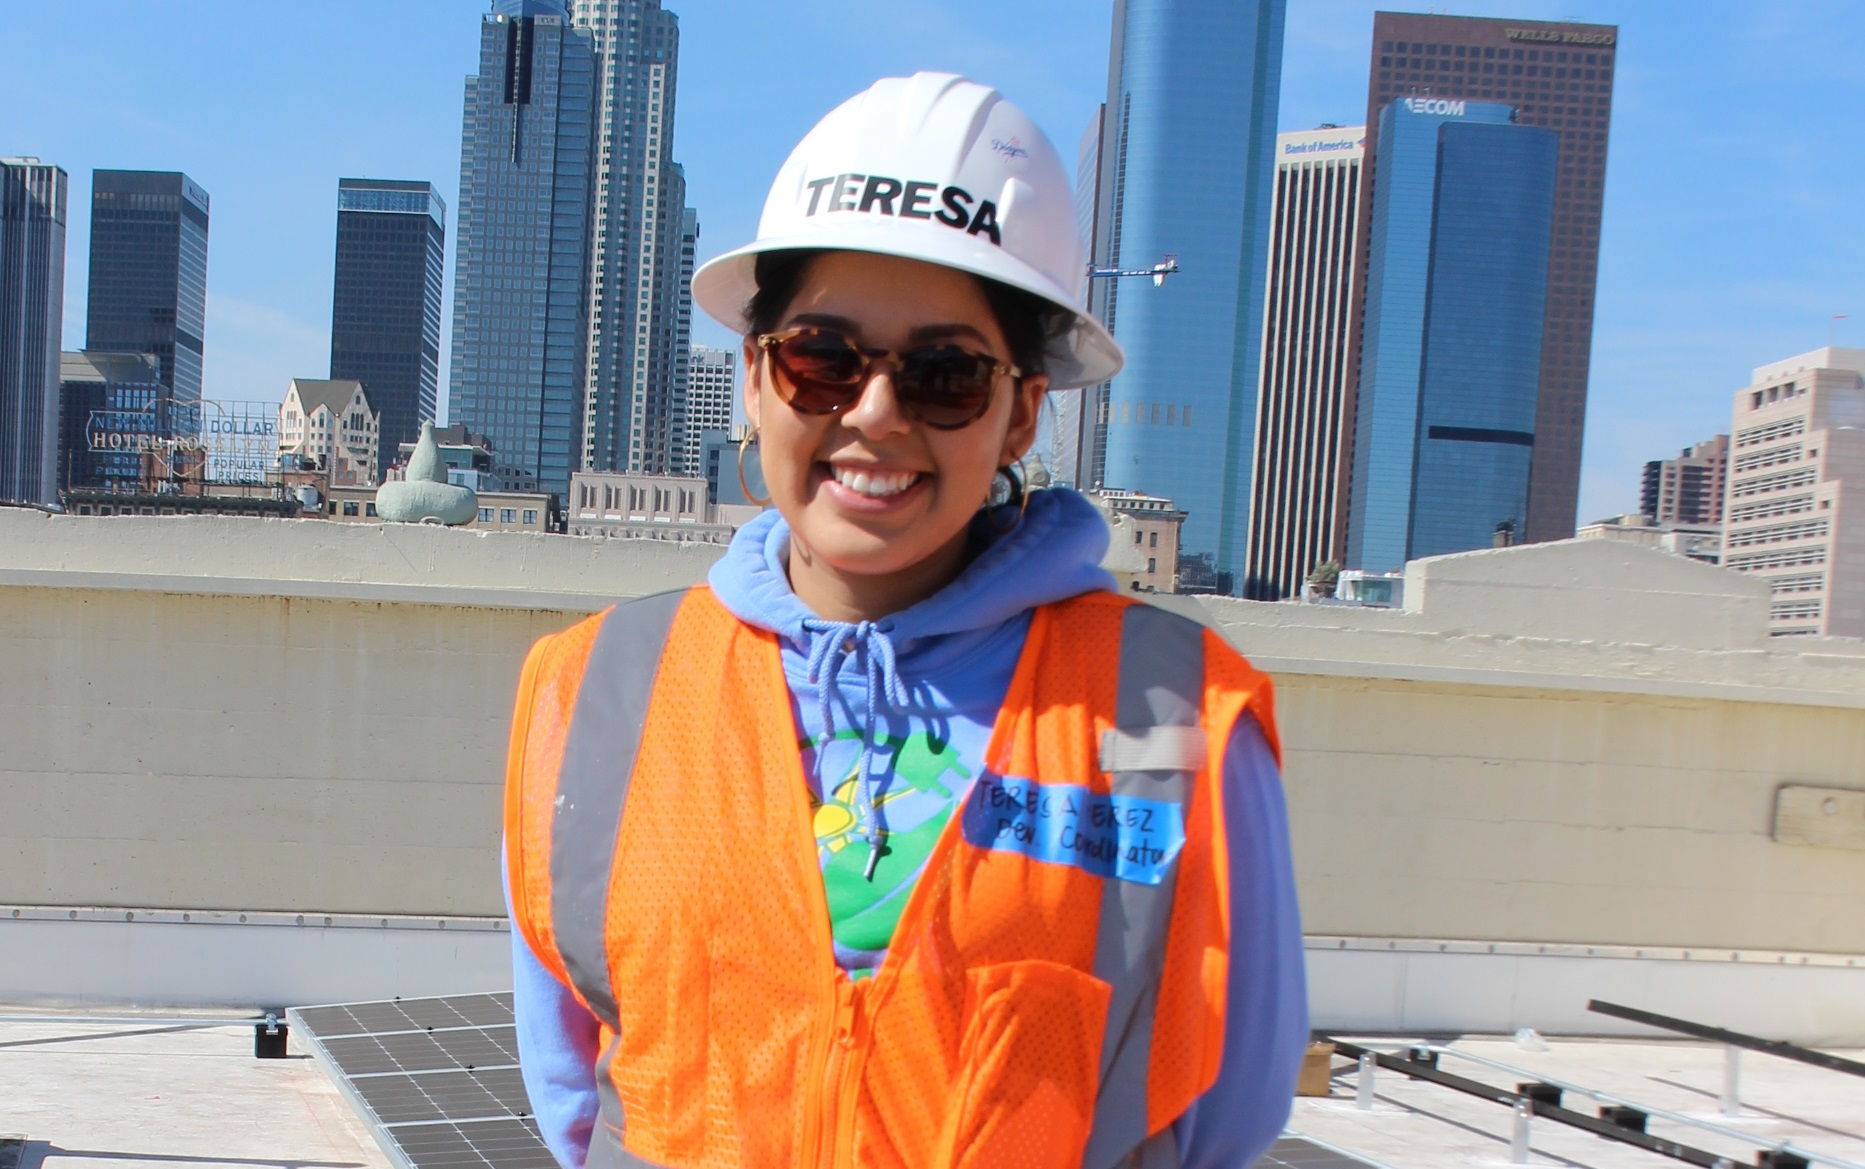 Teresa, identified by hard hat name, stands on a flat roof in front of skyline buildings